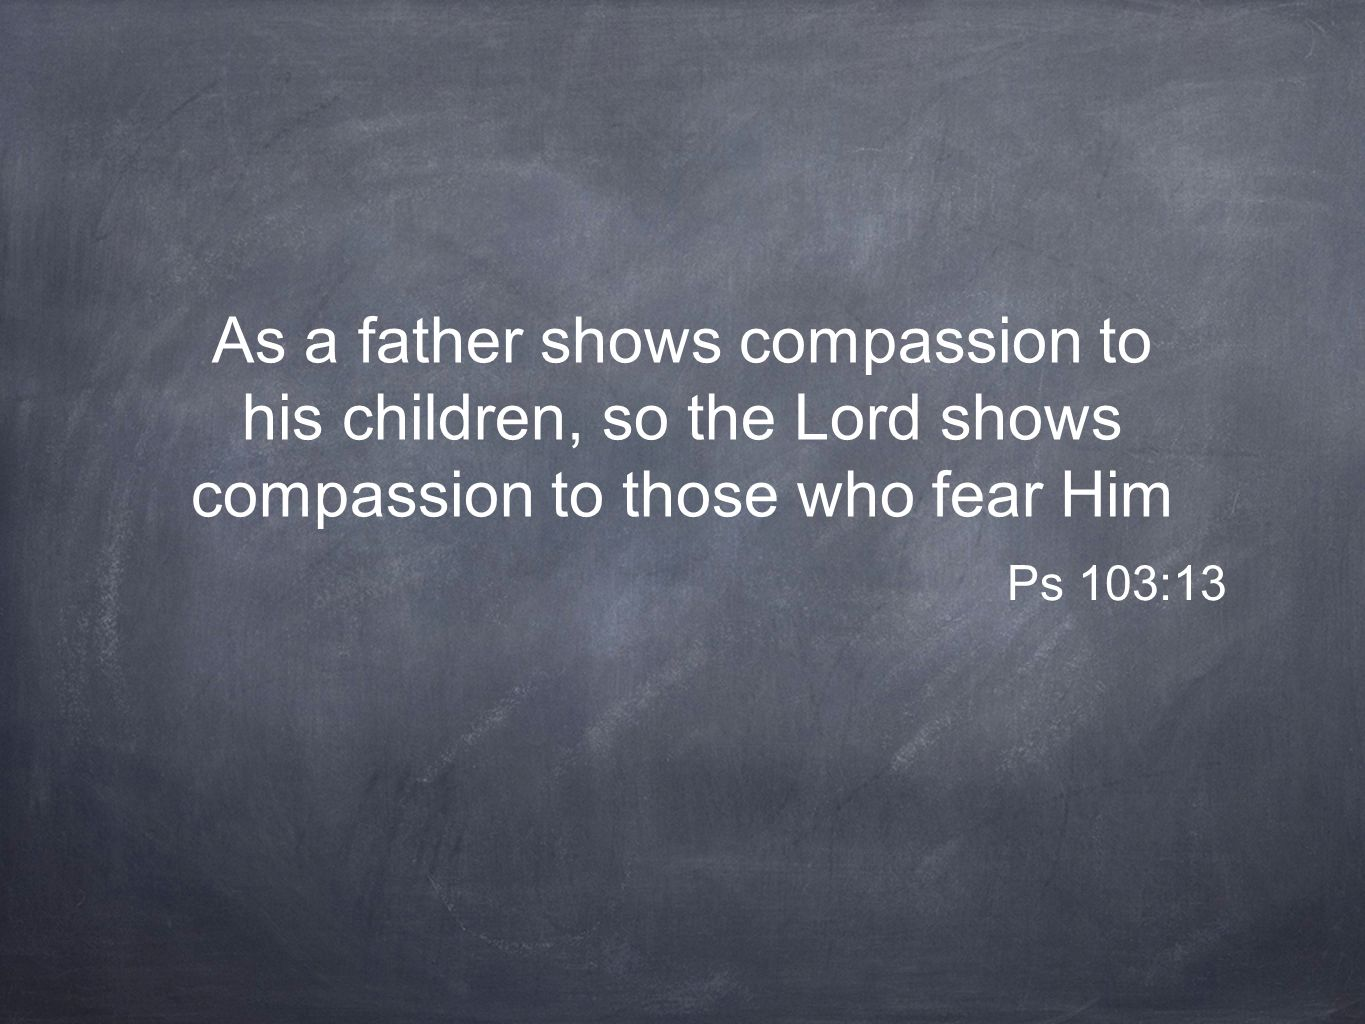 As a father shows compassion to his children, so the Lord shows compassion to those who fear Him Ps 103:13